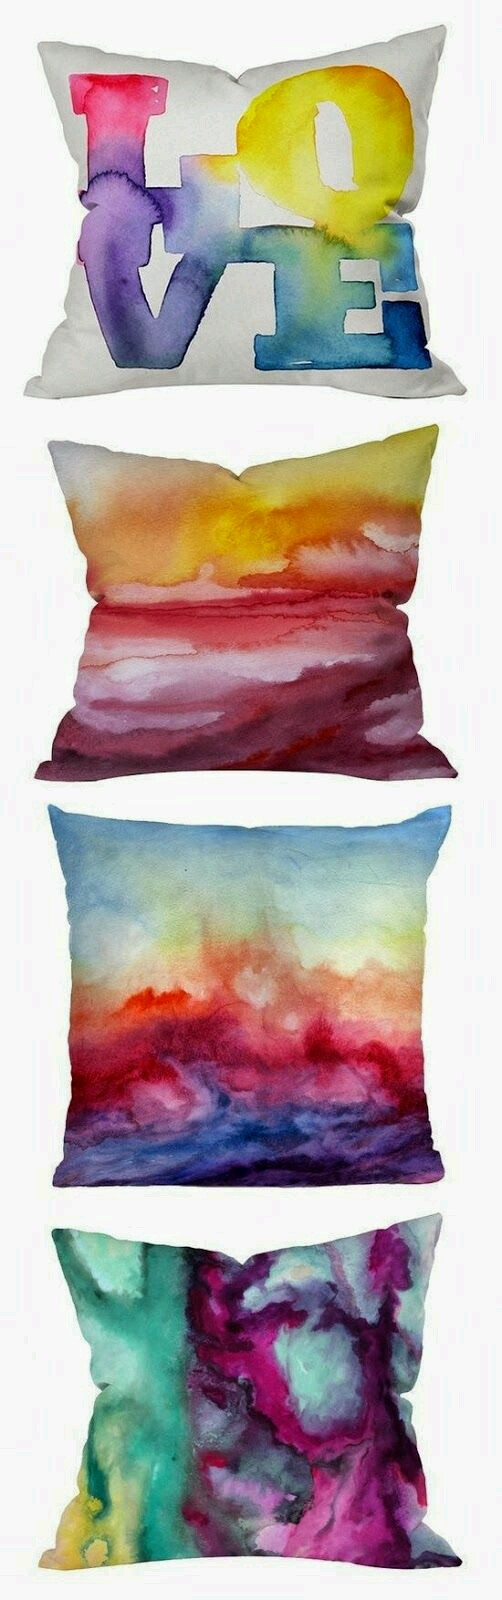 🌟DIY Watercolor Pillow Cases.  So cute and Easy🌟